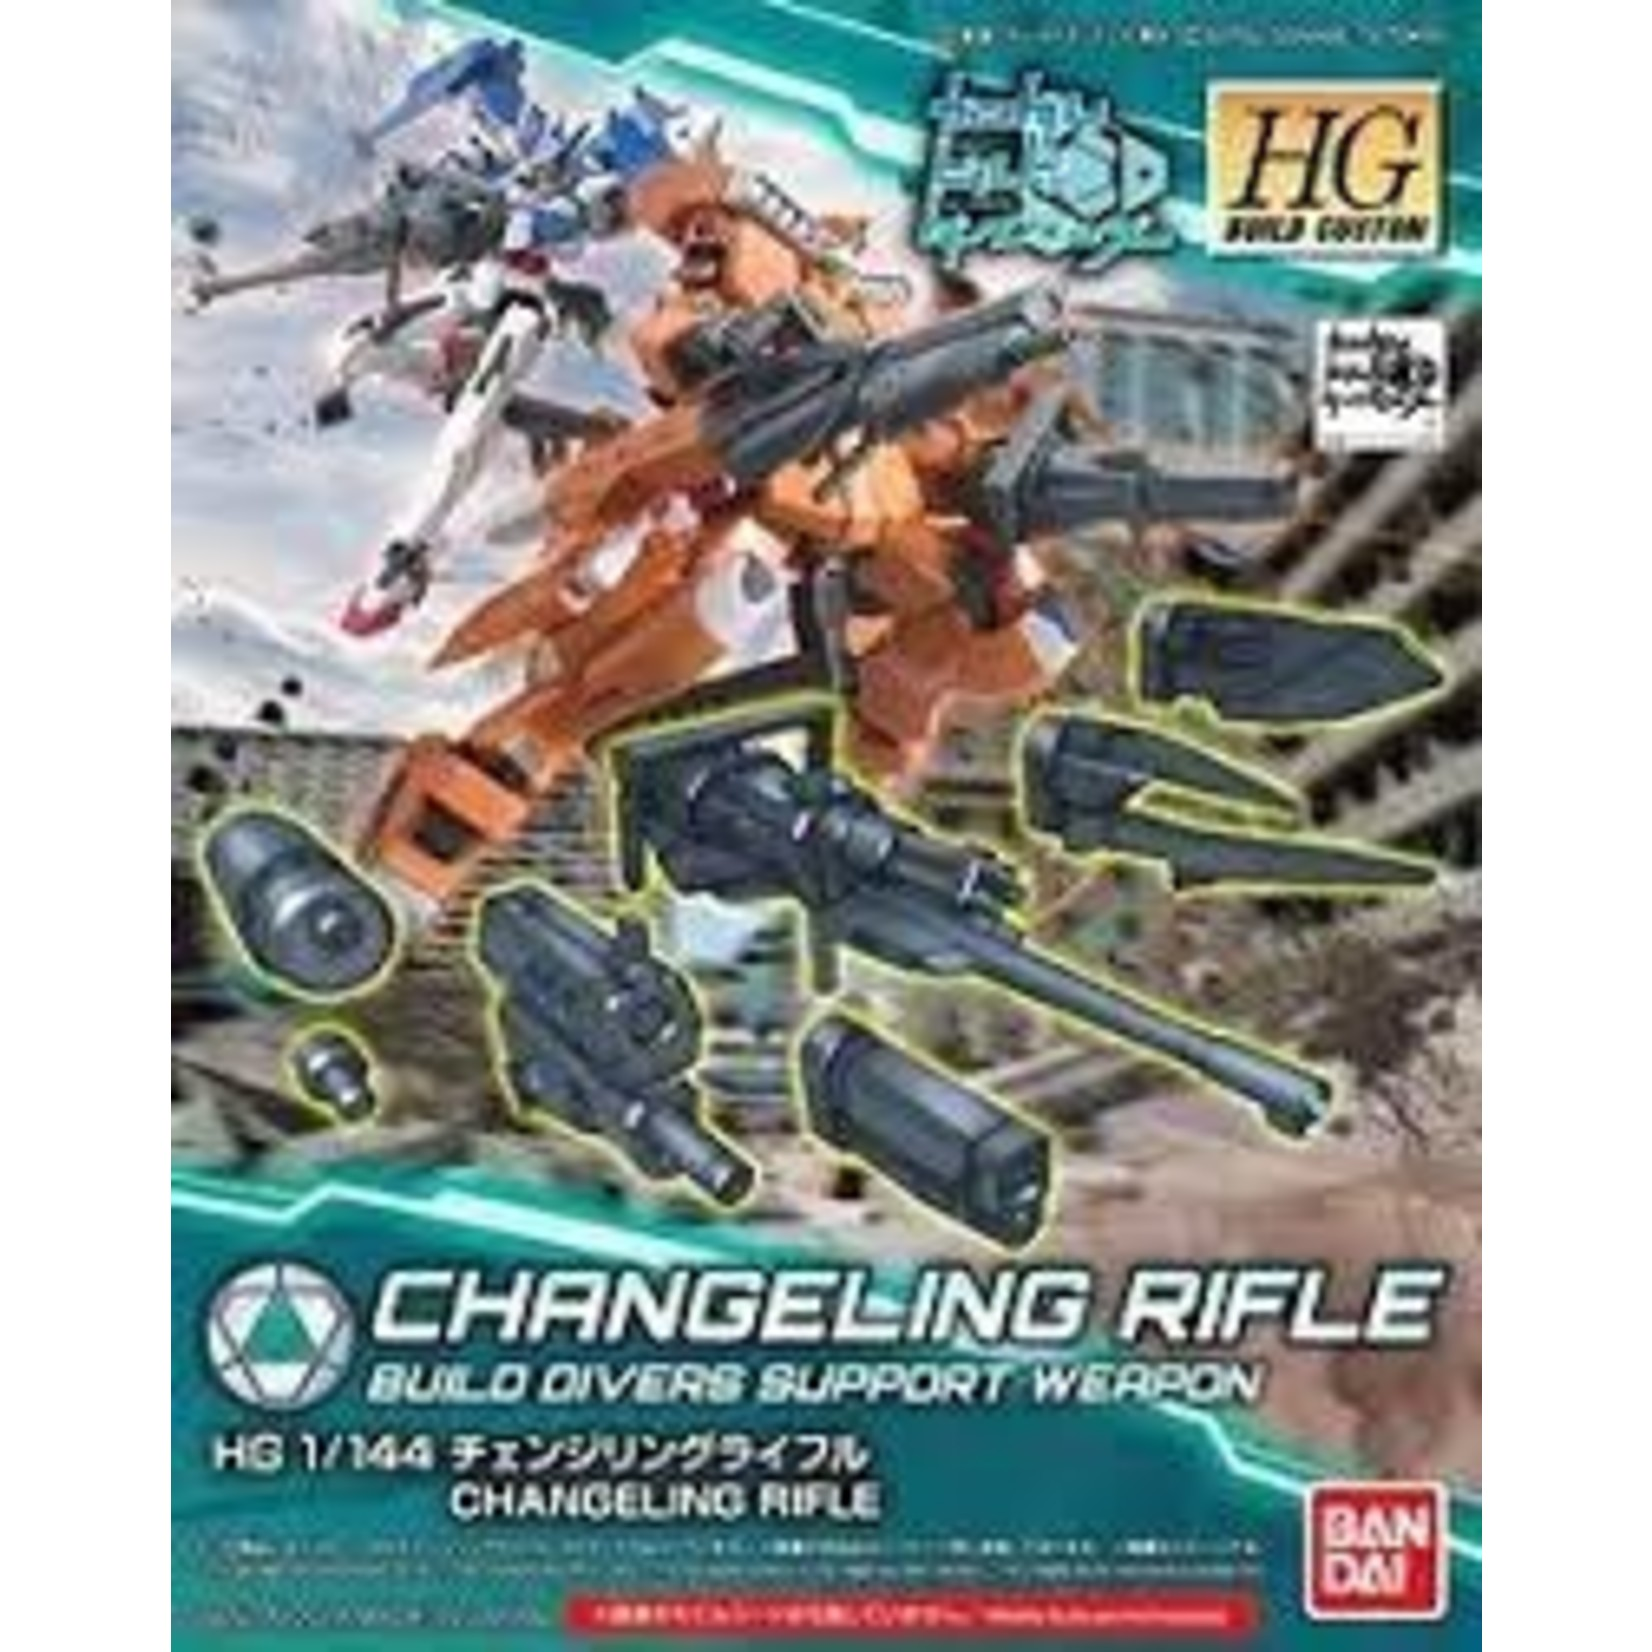 Gundam-Build Divers Support Weapon Changling Rifle